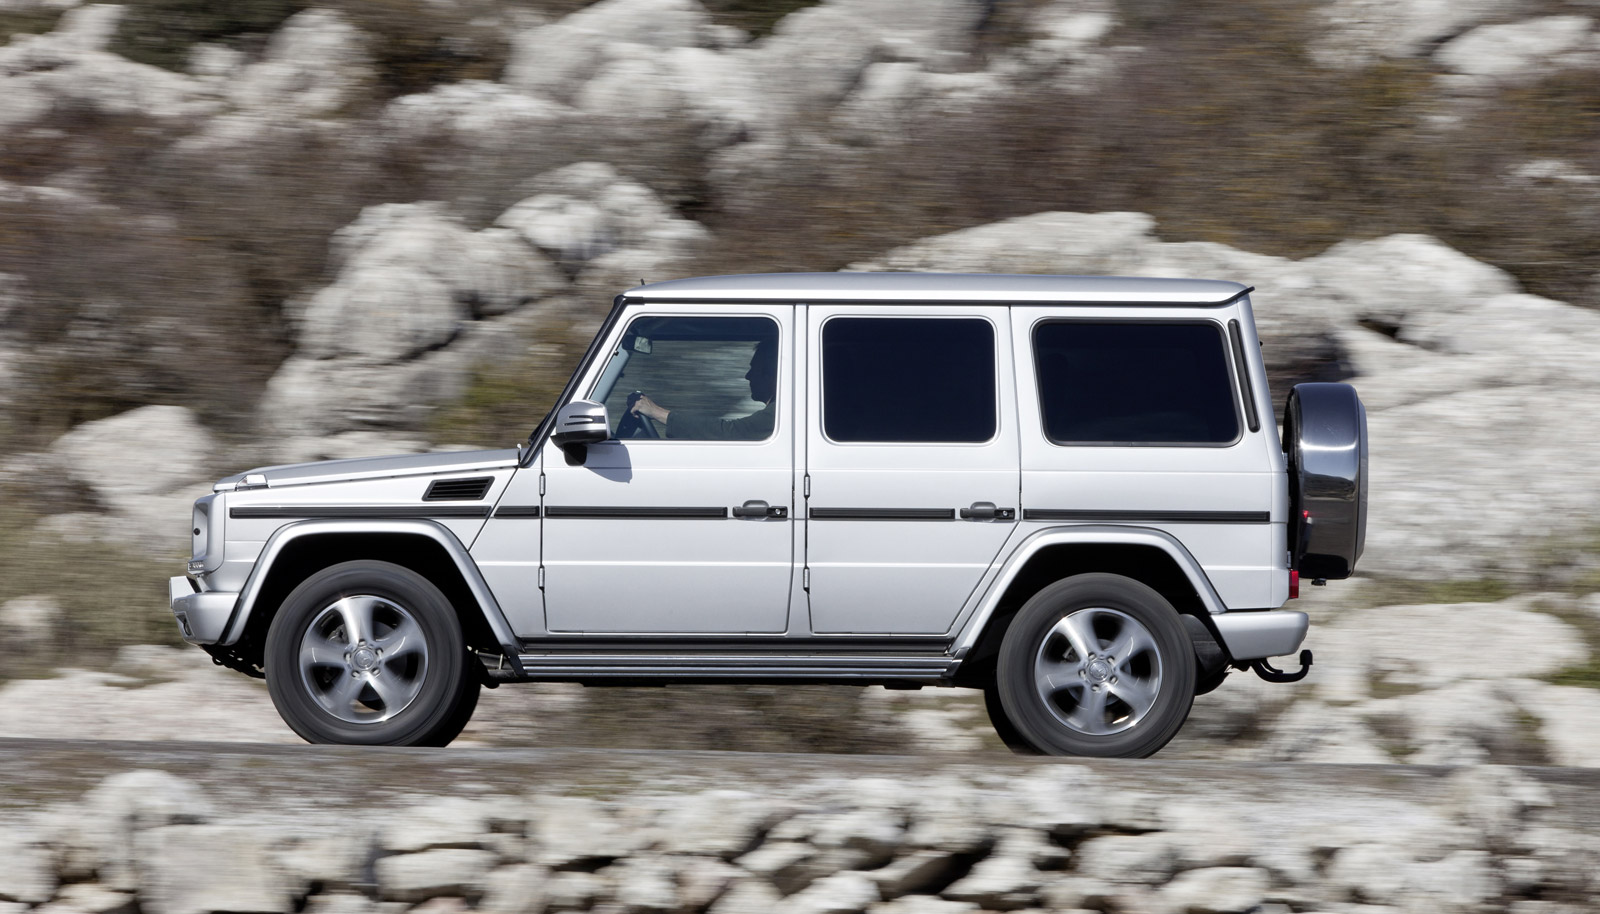 Mercedes benz announces g65 amg power and price both for Mercedes benz g class suv price